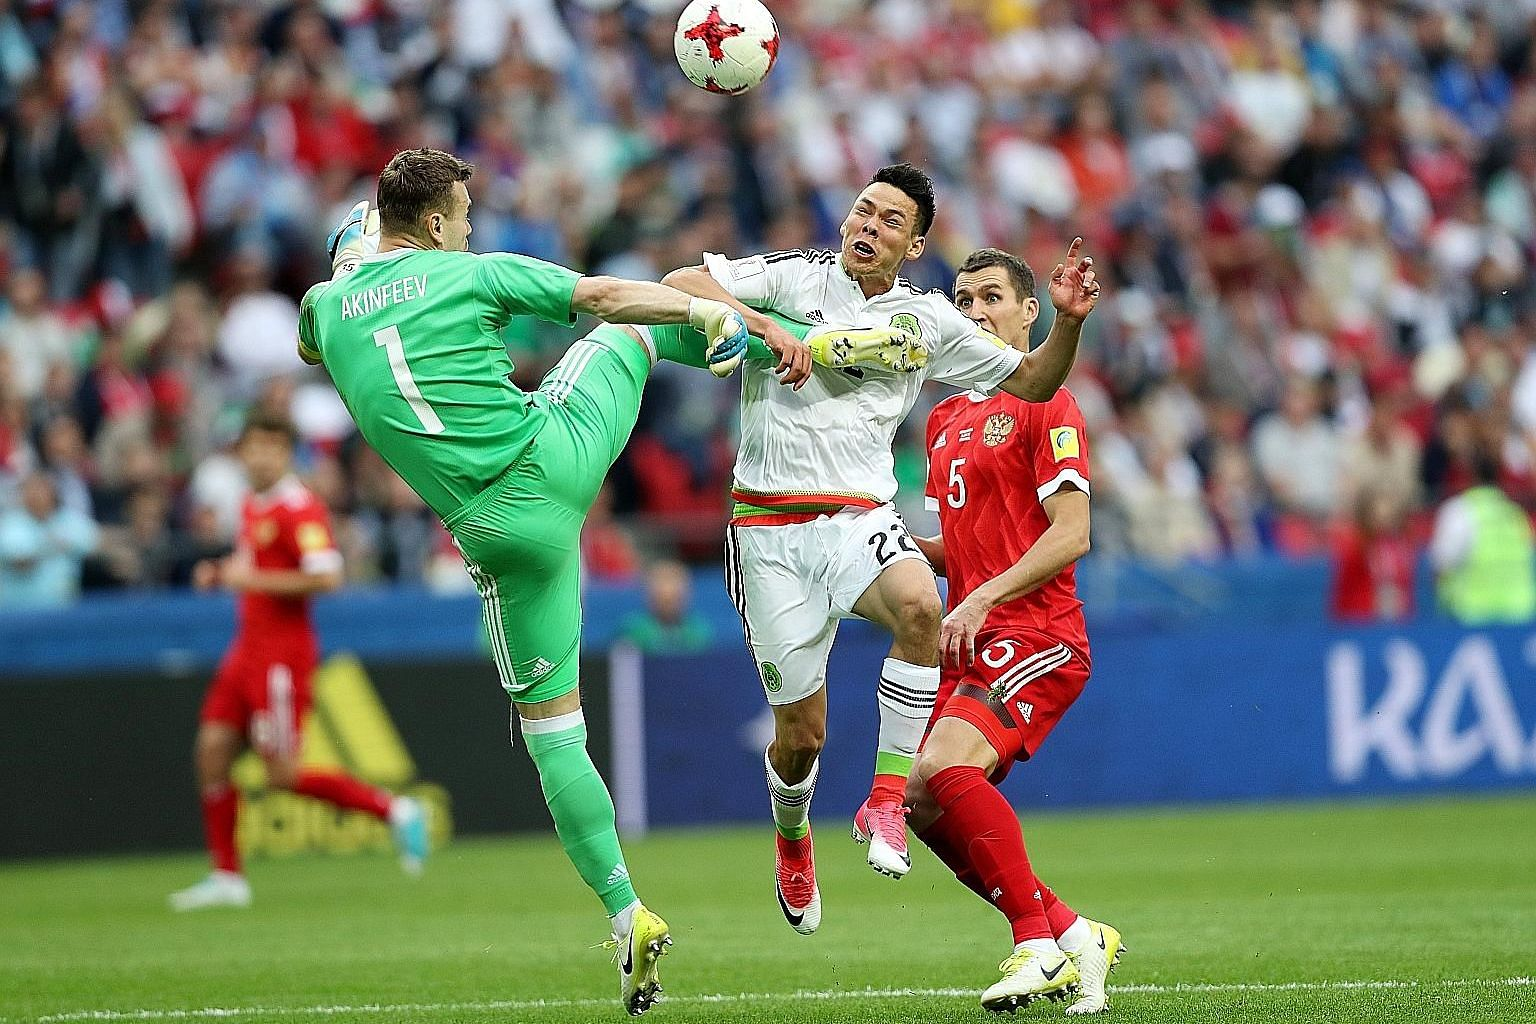 Mexico winger Hirving Lozano scoring the winner past goalkeeper Igor Akinfeev of Russia as the hosts exited the Confederations Cup.